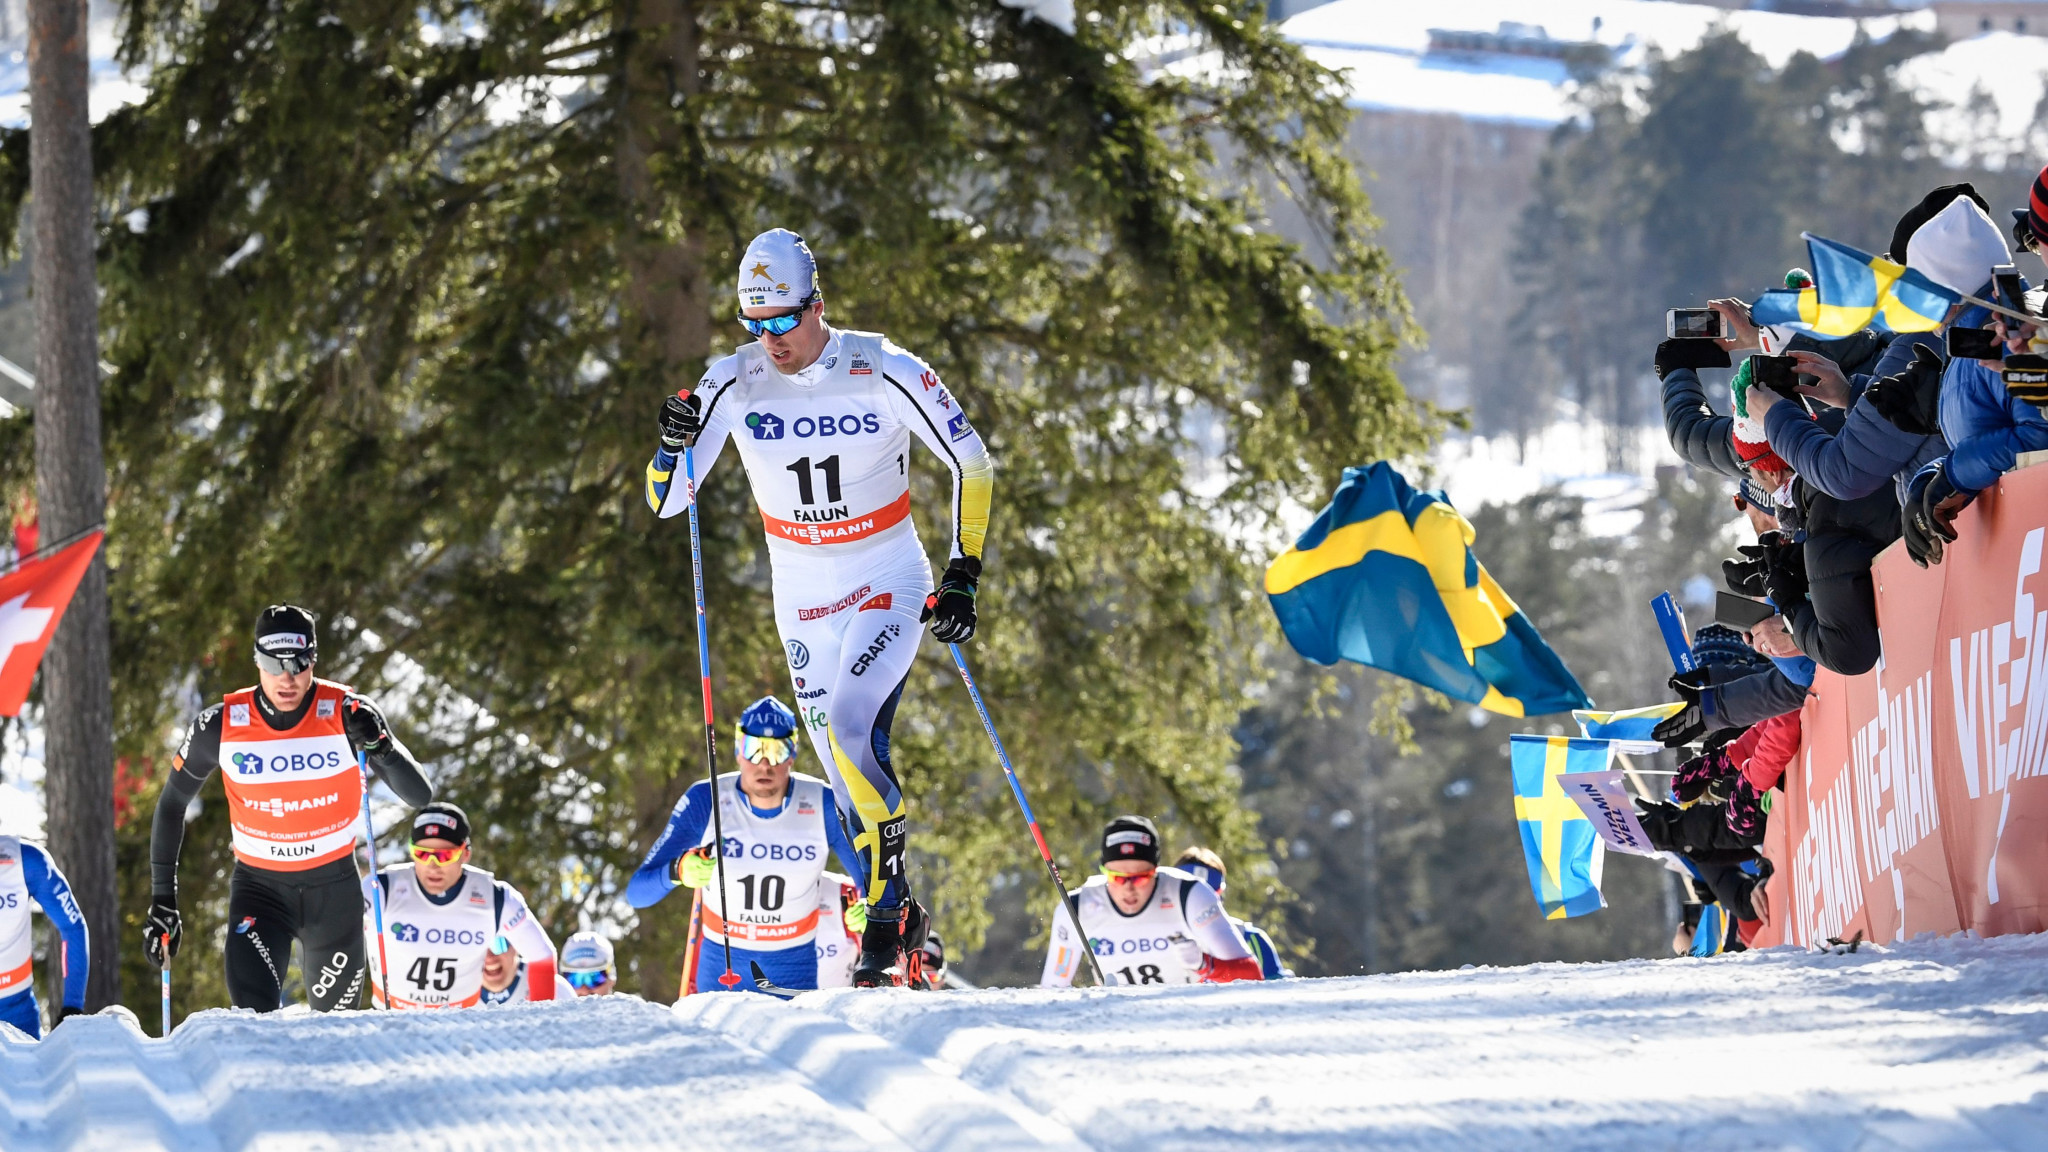 FIS confirm Minnesota as host of Cross-Country World Cup in 2020